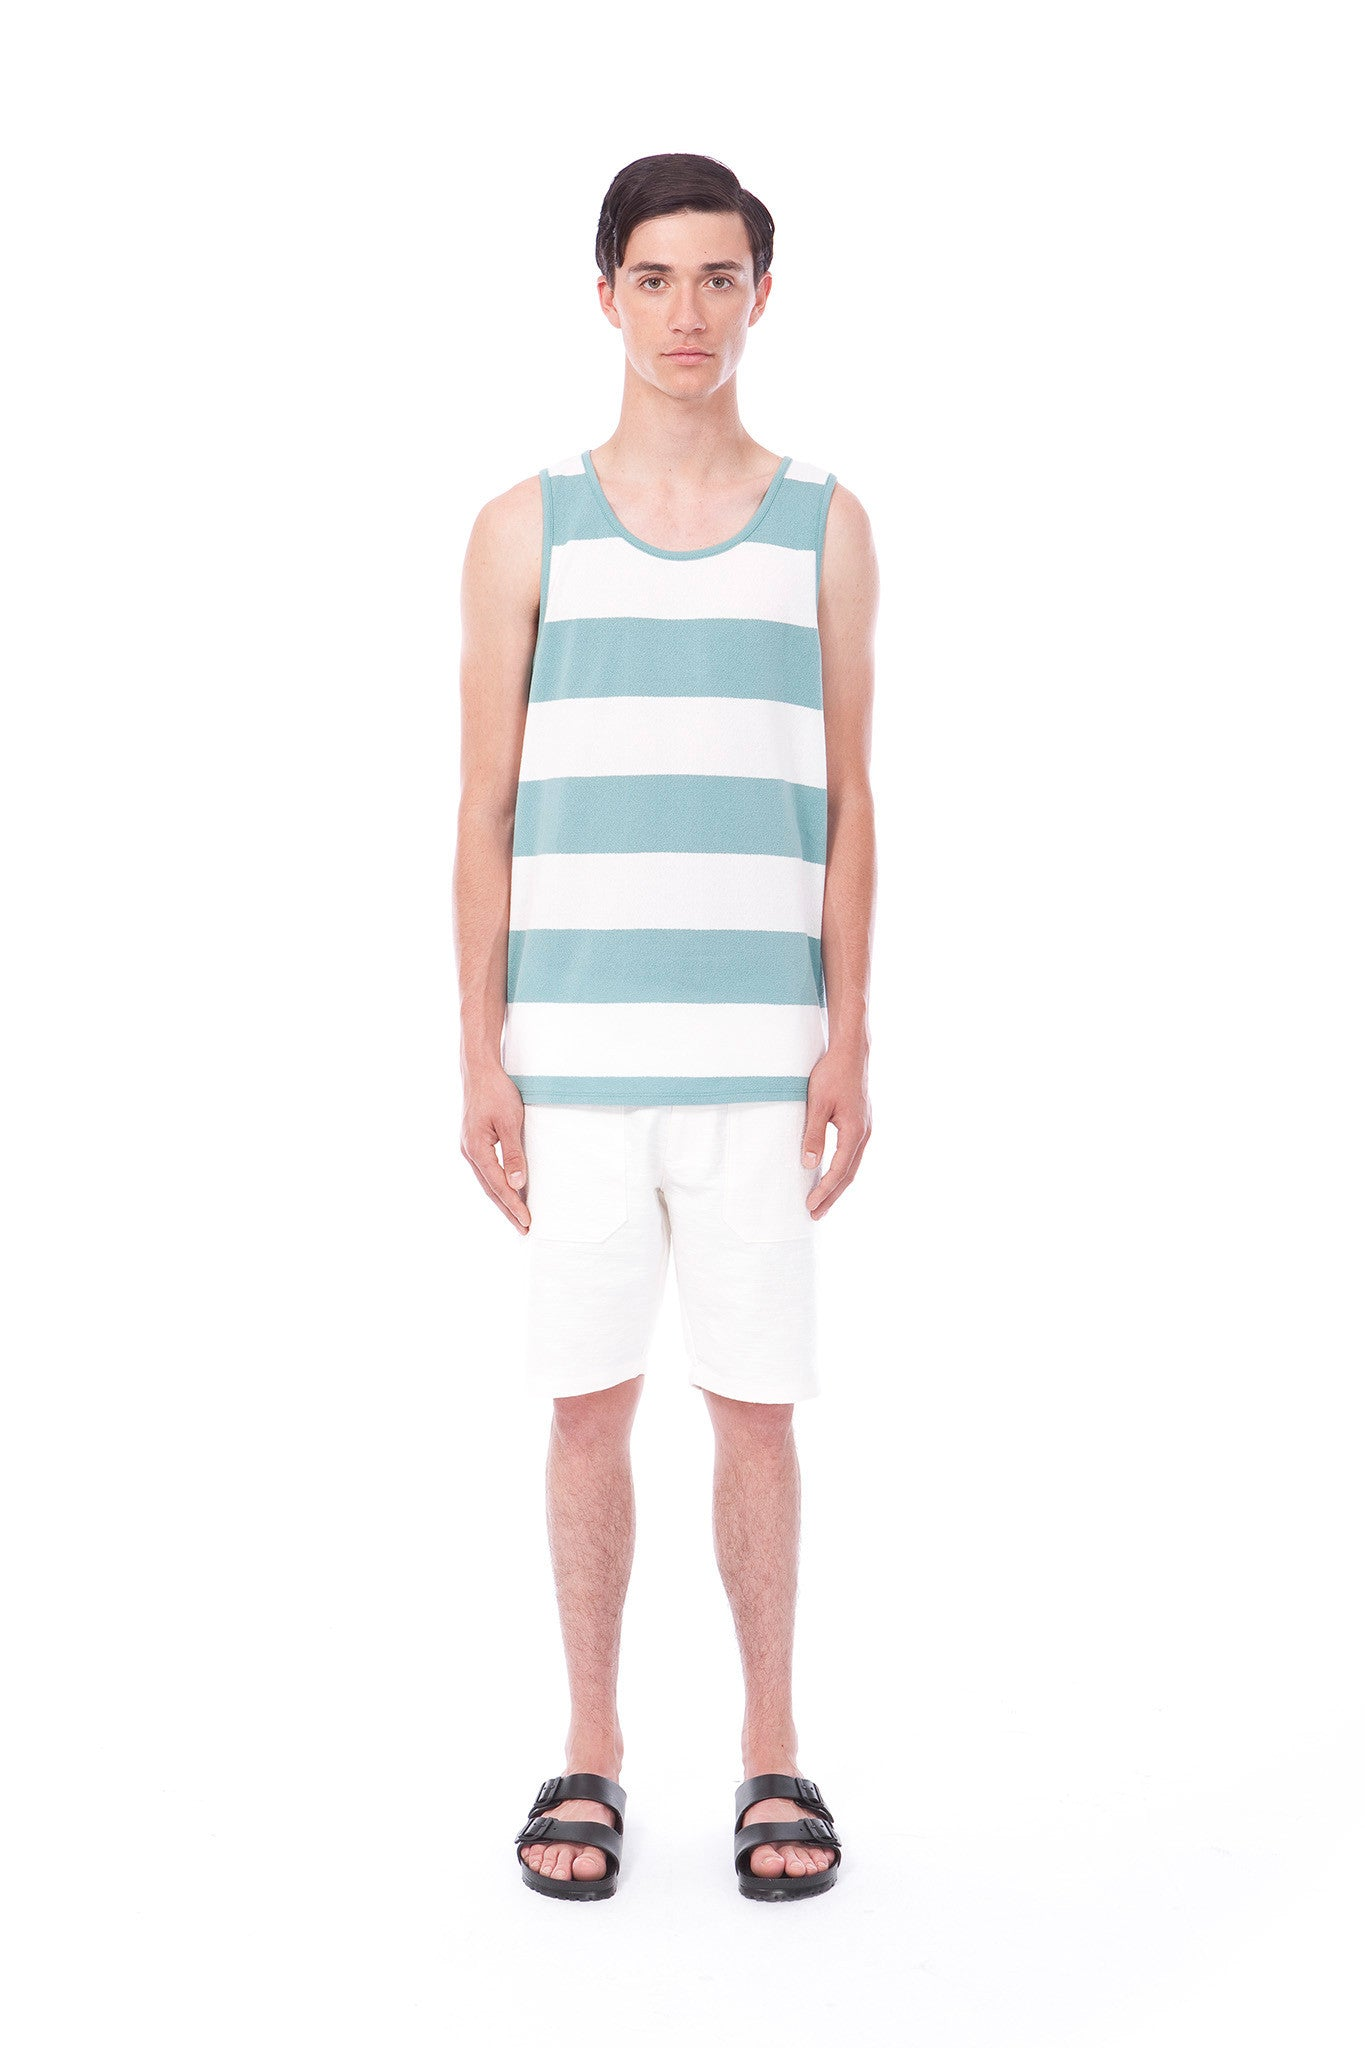 COLE - TANK TOP - CANTON